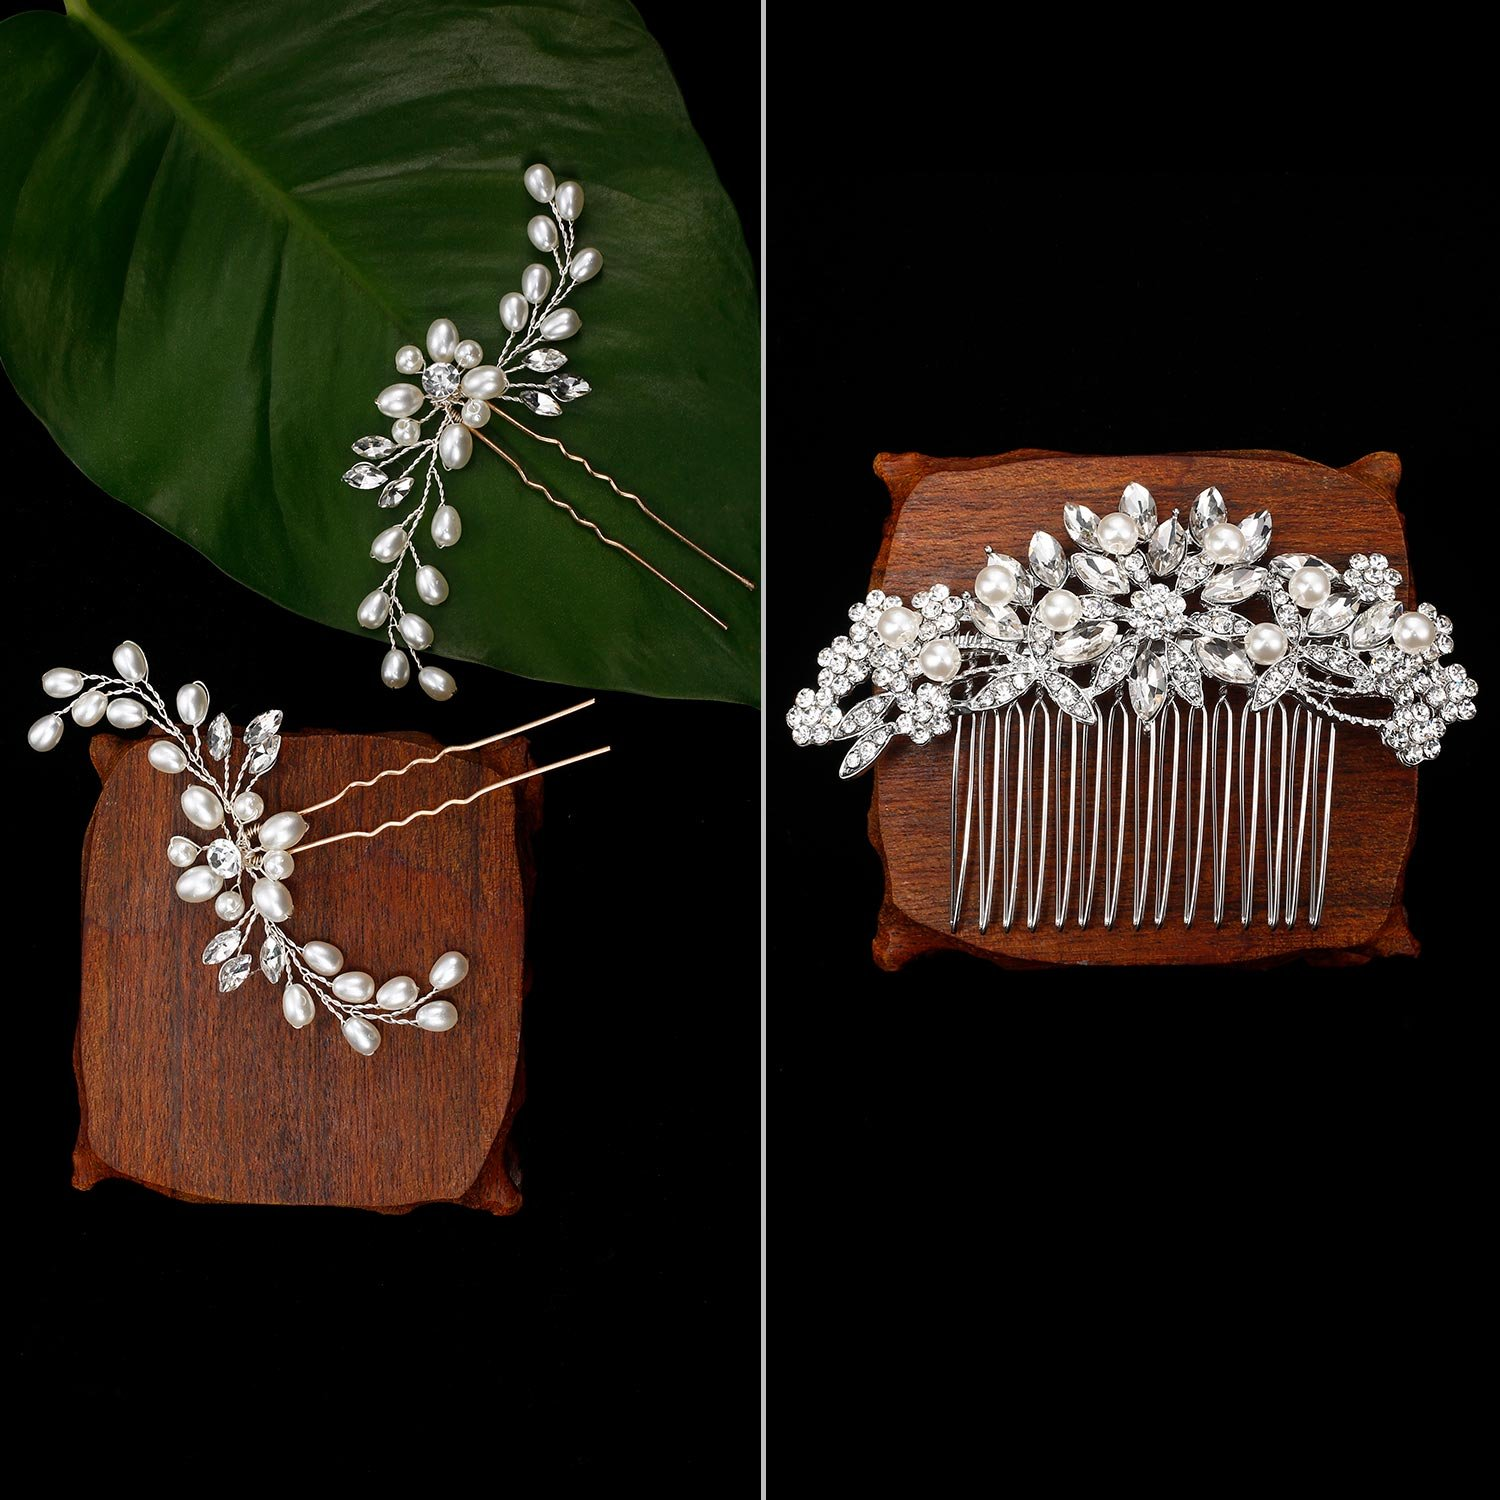 Gejoy 3 Pieces Elegant Wedding Crystal Hair Accessories, Leaves Flowers Hair Comb and 2 Pieces Rhinestone Bridal Hair Pins for Women, Bride or Bridesmaid by Gejoy (Image #2)